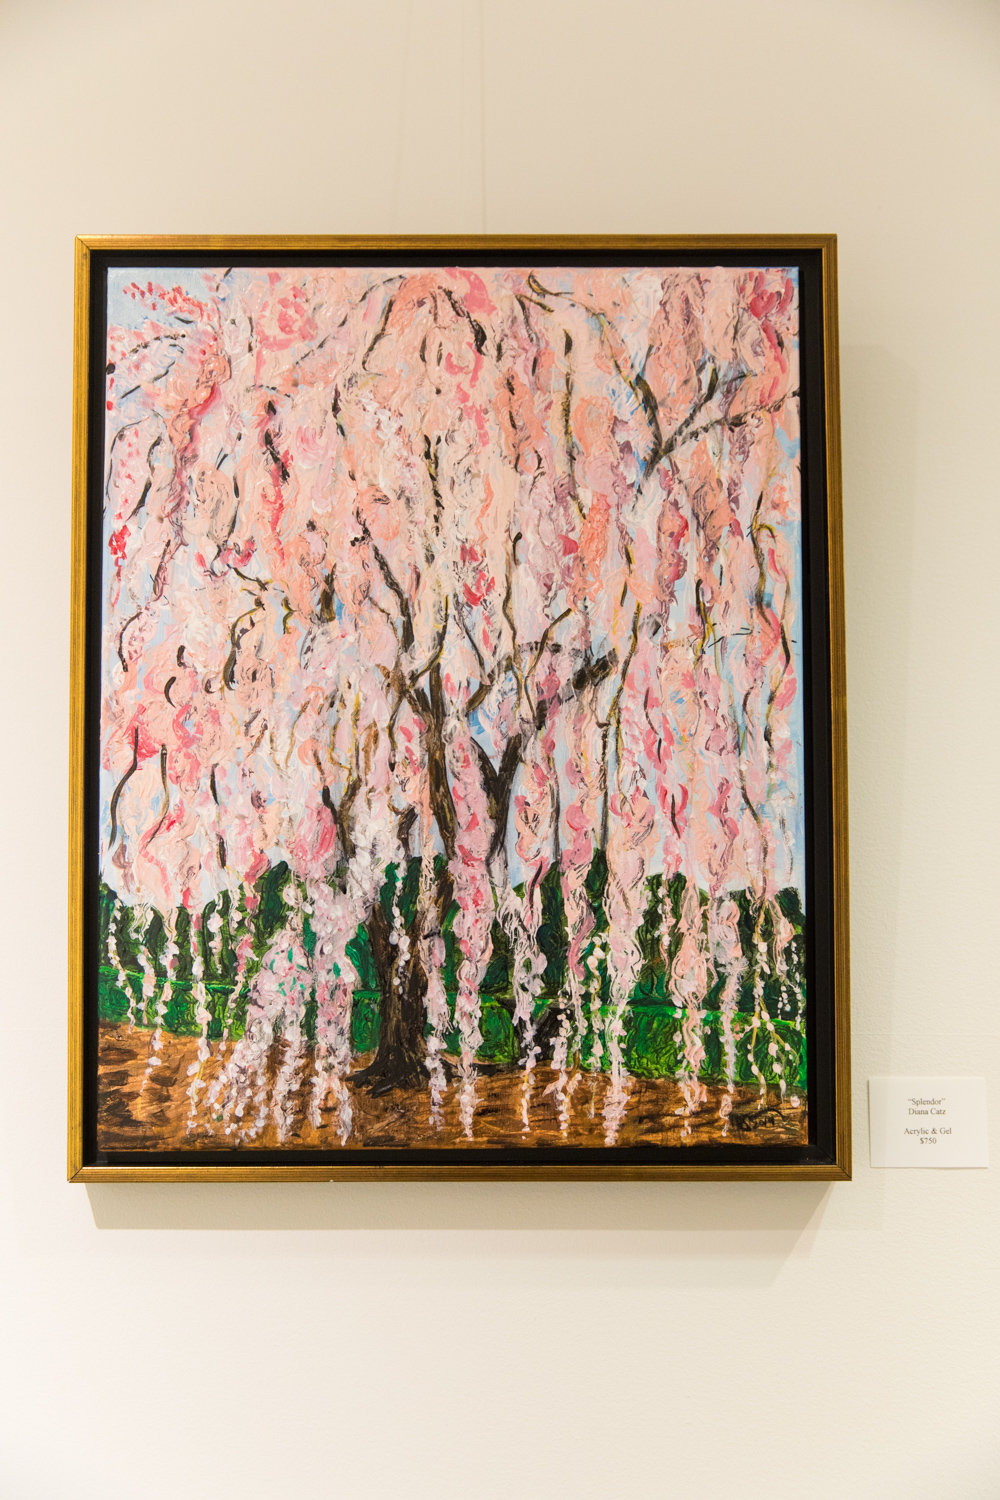 Diana Catz's painting 'Splendor' is included in the exhibition 'Tree Time,' on display at The Riverdale Y on Arlington Avenue through Nov. 3.